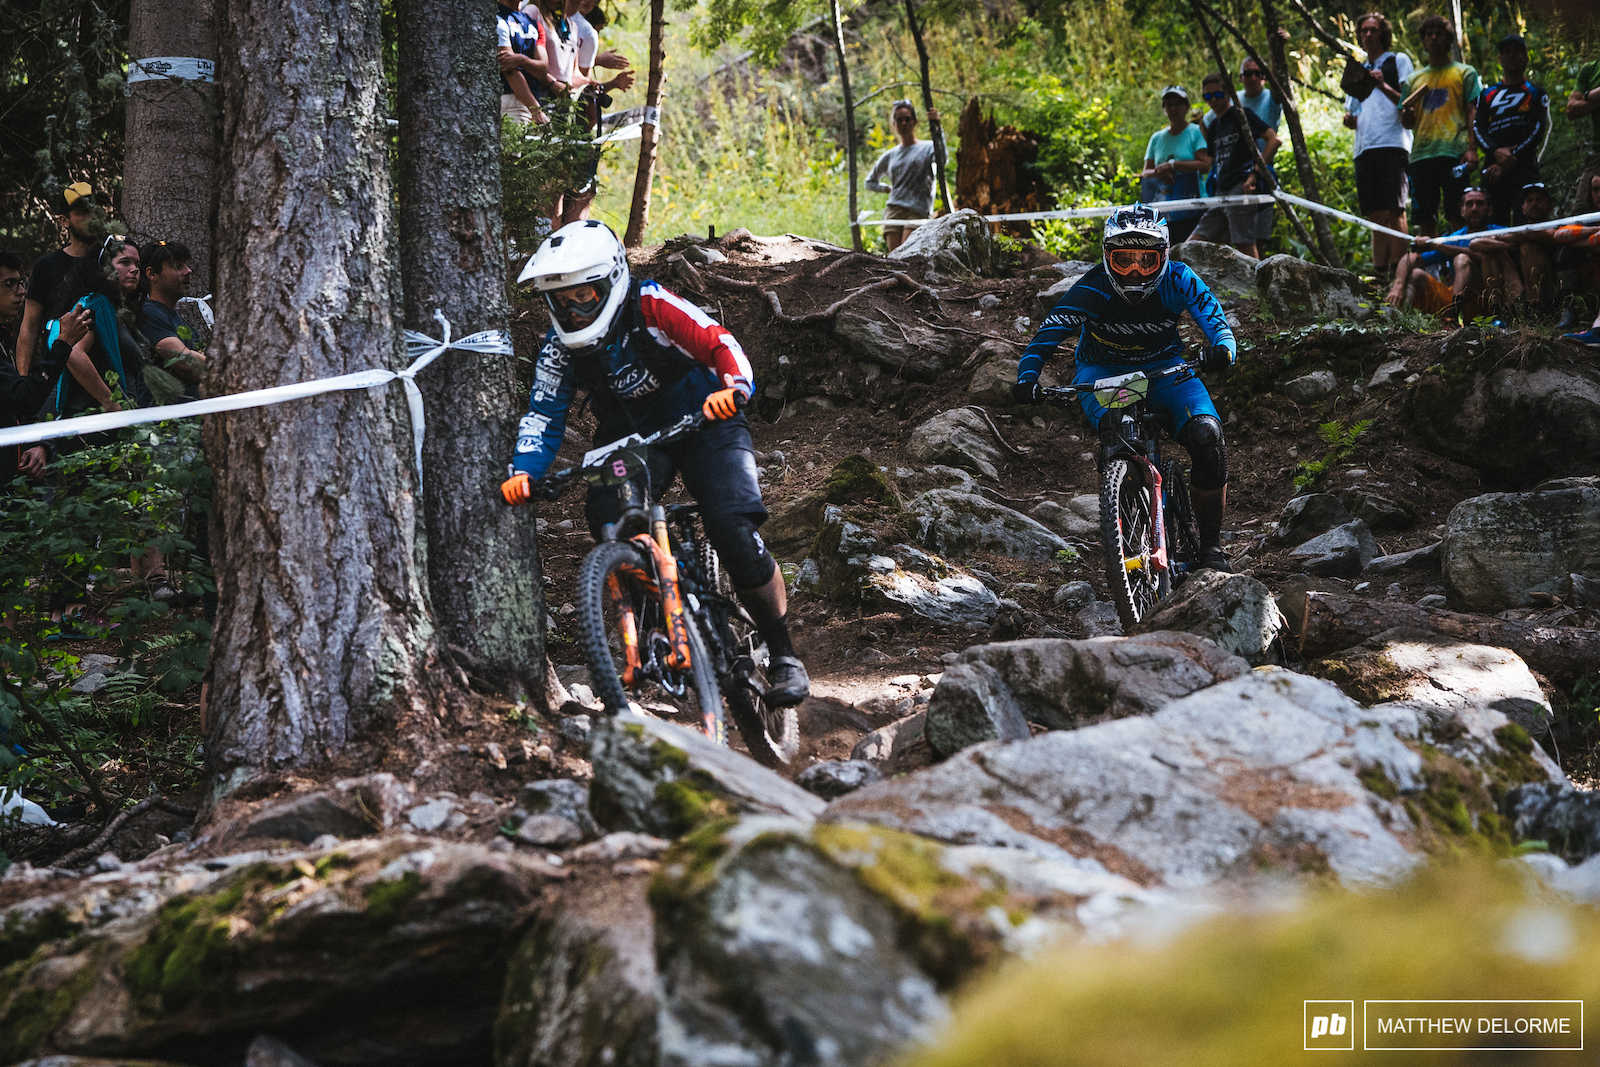 Ines Thoma hot on the heels of Bex Barona in the rock garden on stage six. Thoma finished third.